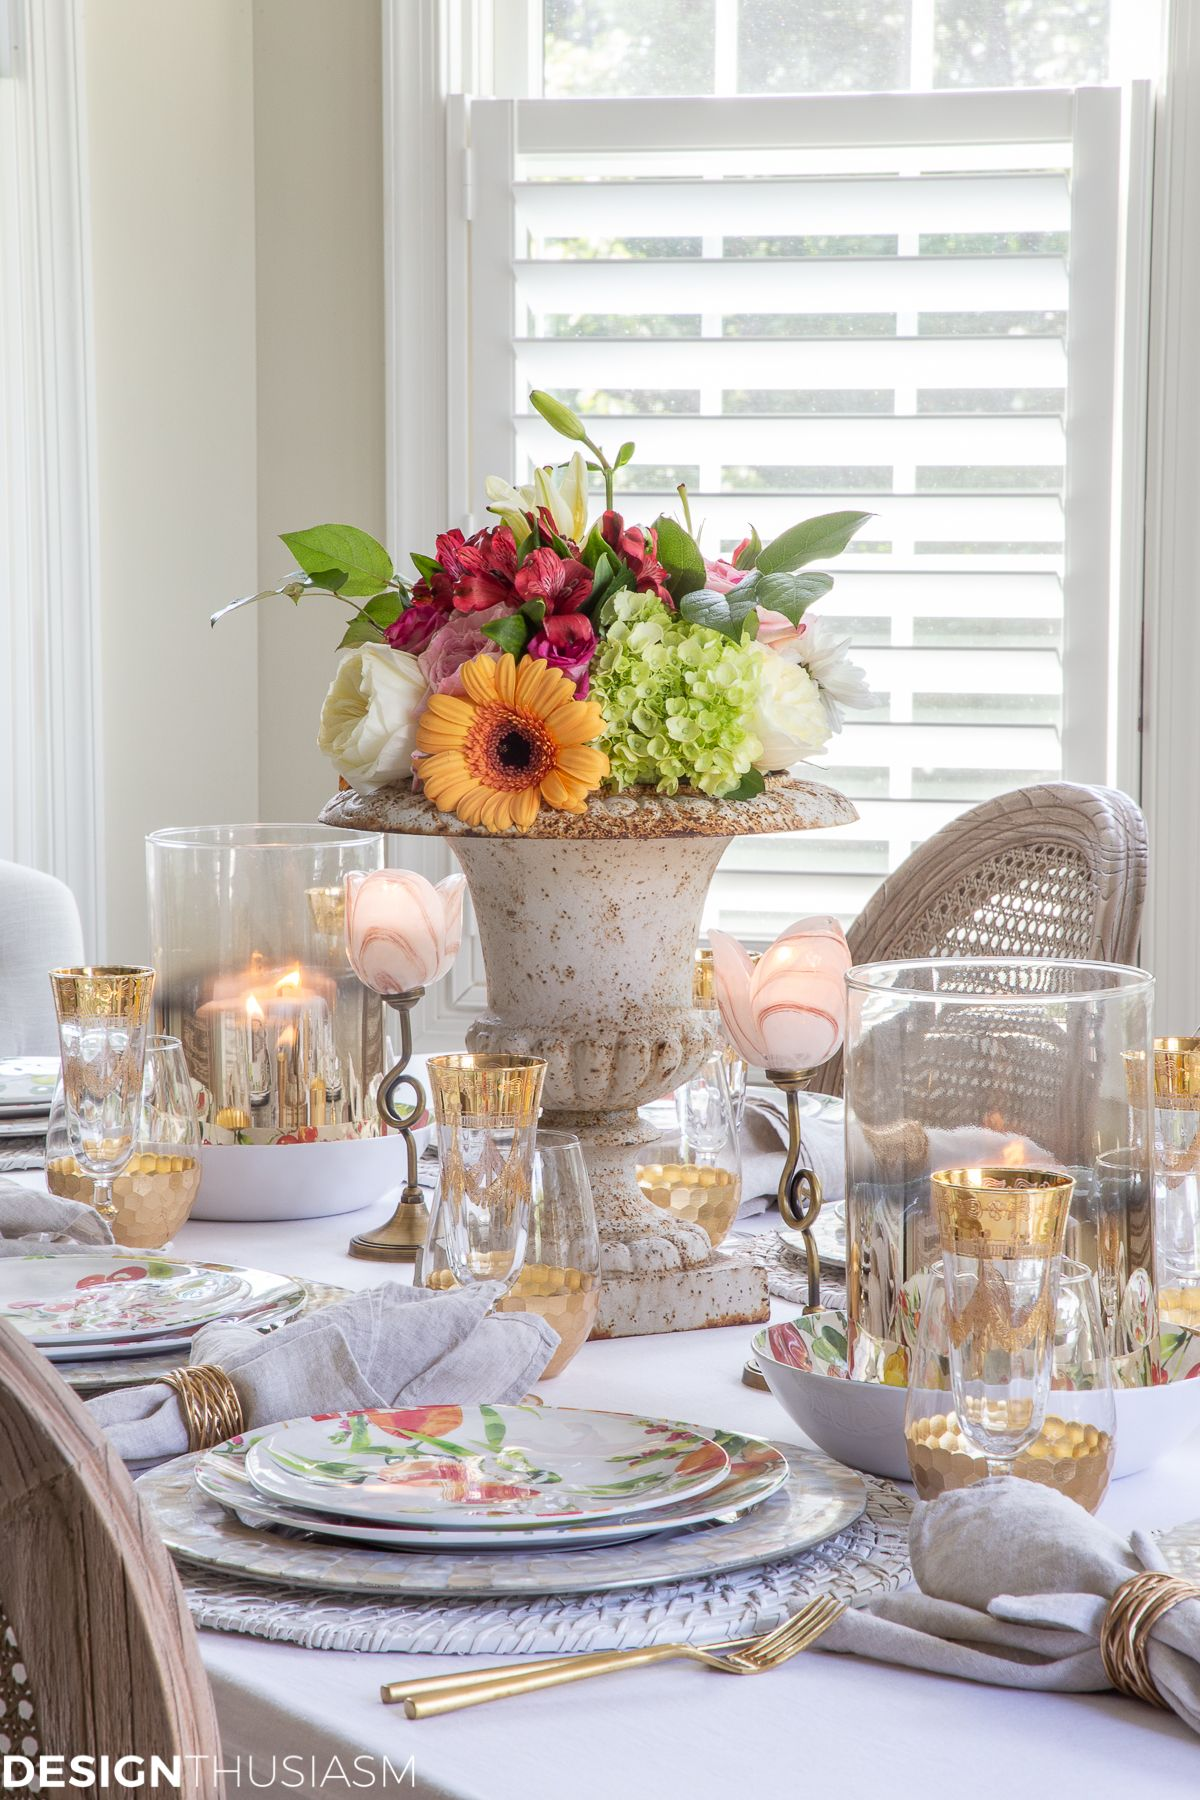 Insanely Gorgeous Informal Table Setting Ideas On A Budget Summer Table Decorations Table Settings Thanksgiving Table Settings